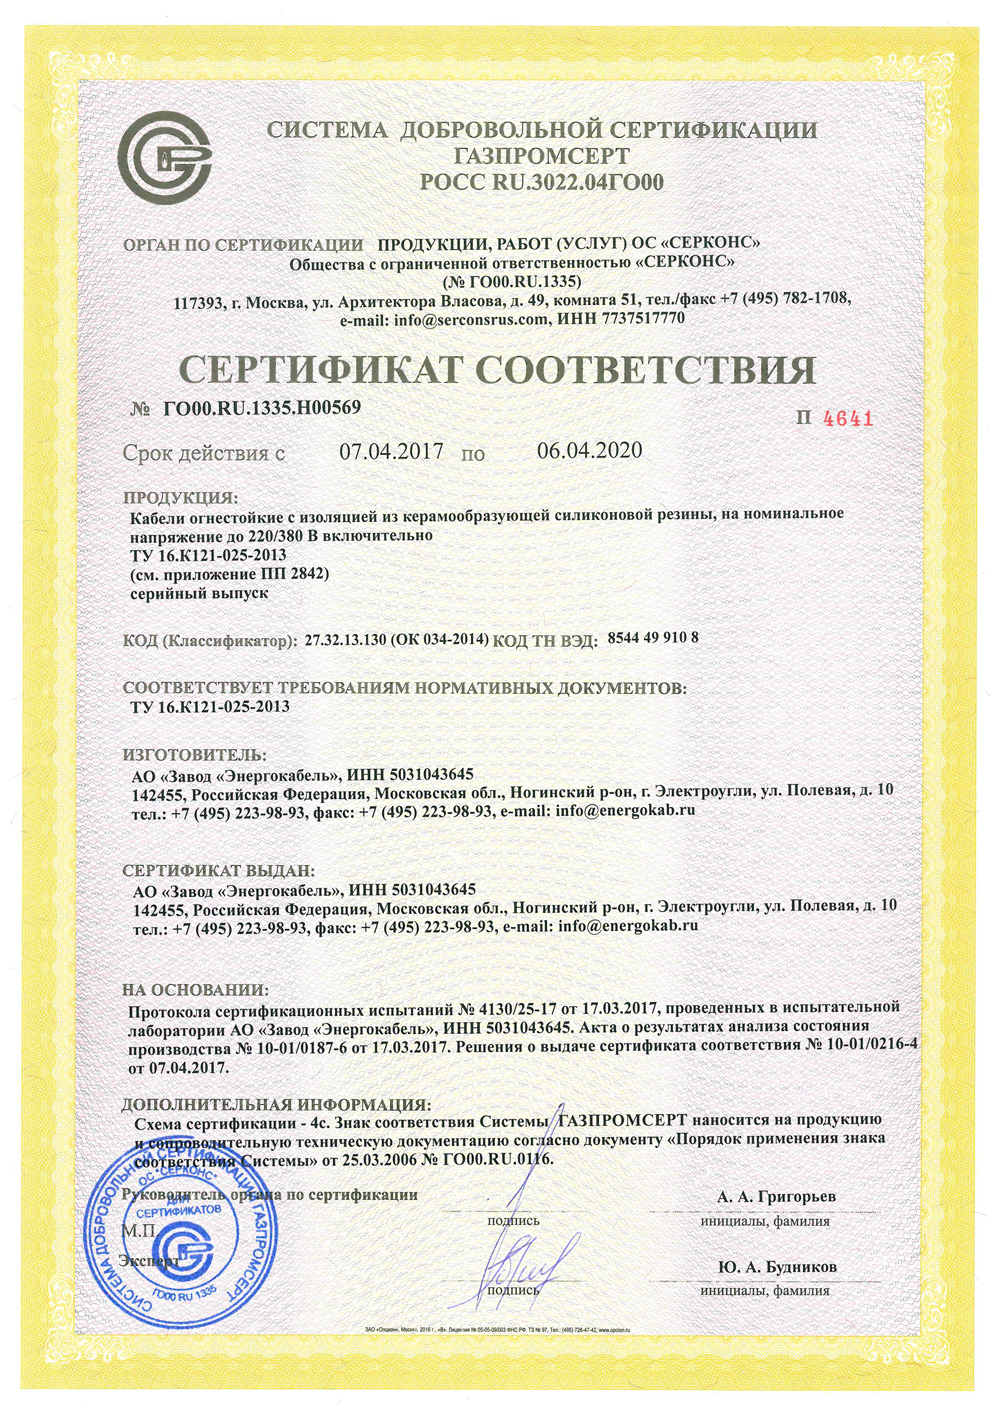 Certificate of Conformity No. ГО00.RU.1335.Н00567. Power fire-resistant cables with insulation made of ceramic-forming rubber for rated alternating voltage 0,66 and 1 kV, Specifications 16.K121-026-2013.